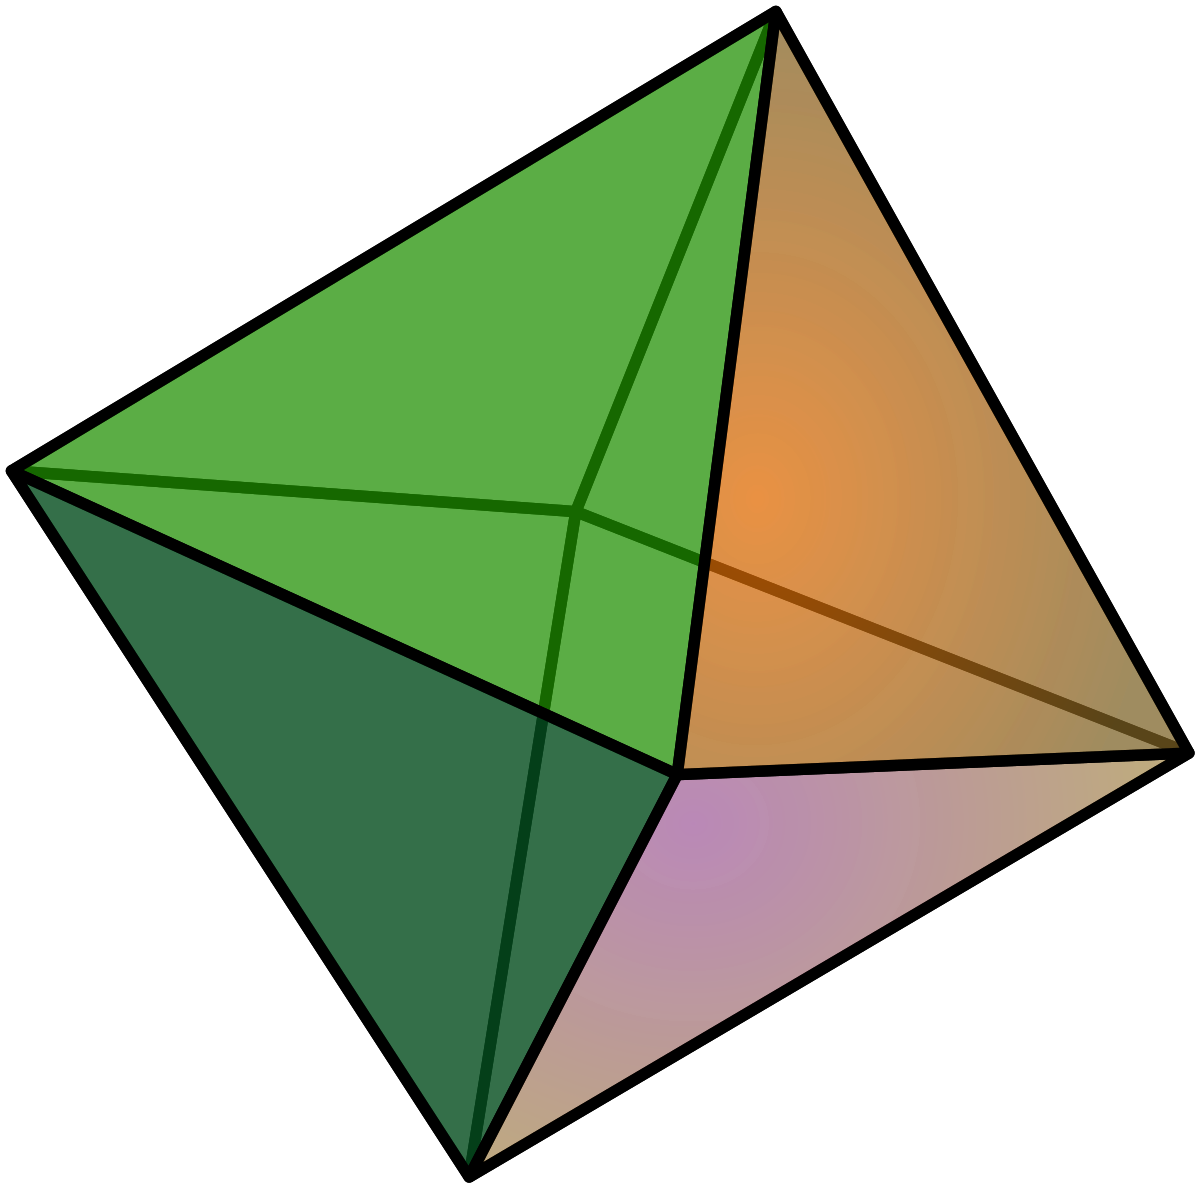 Crystal clipart octahedral. Octahedron simple english wikipedia